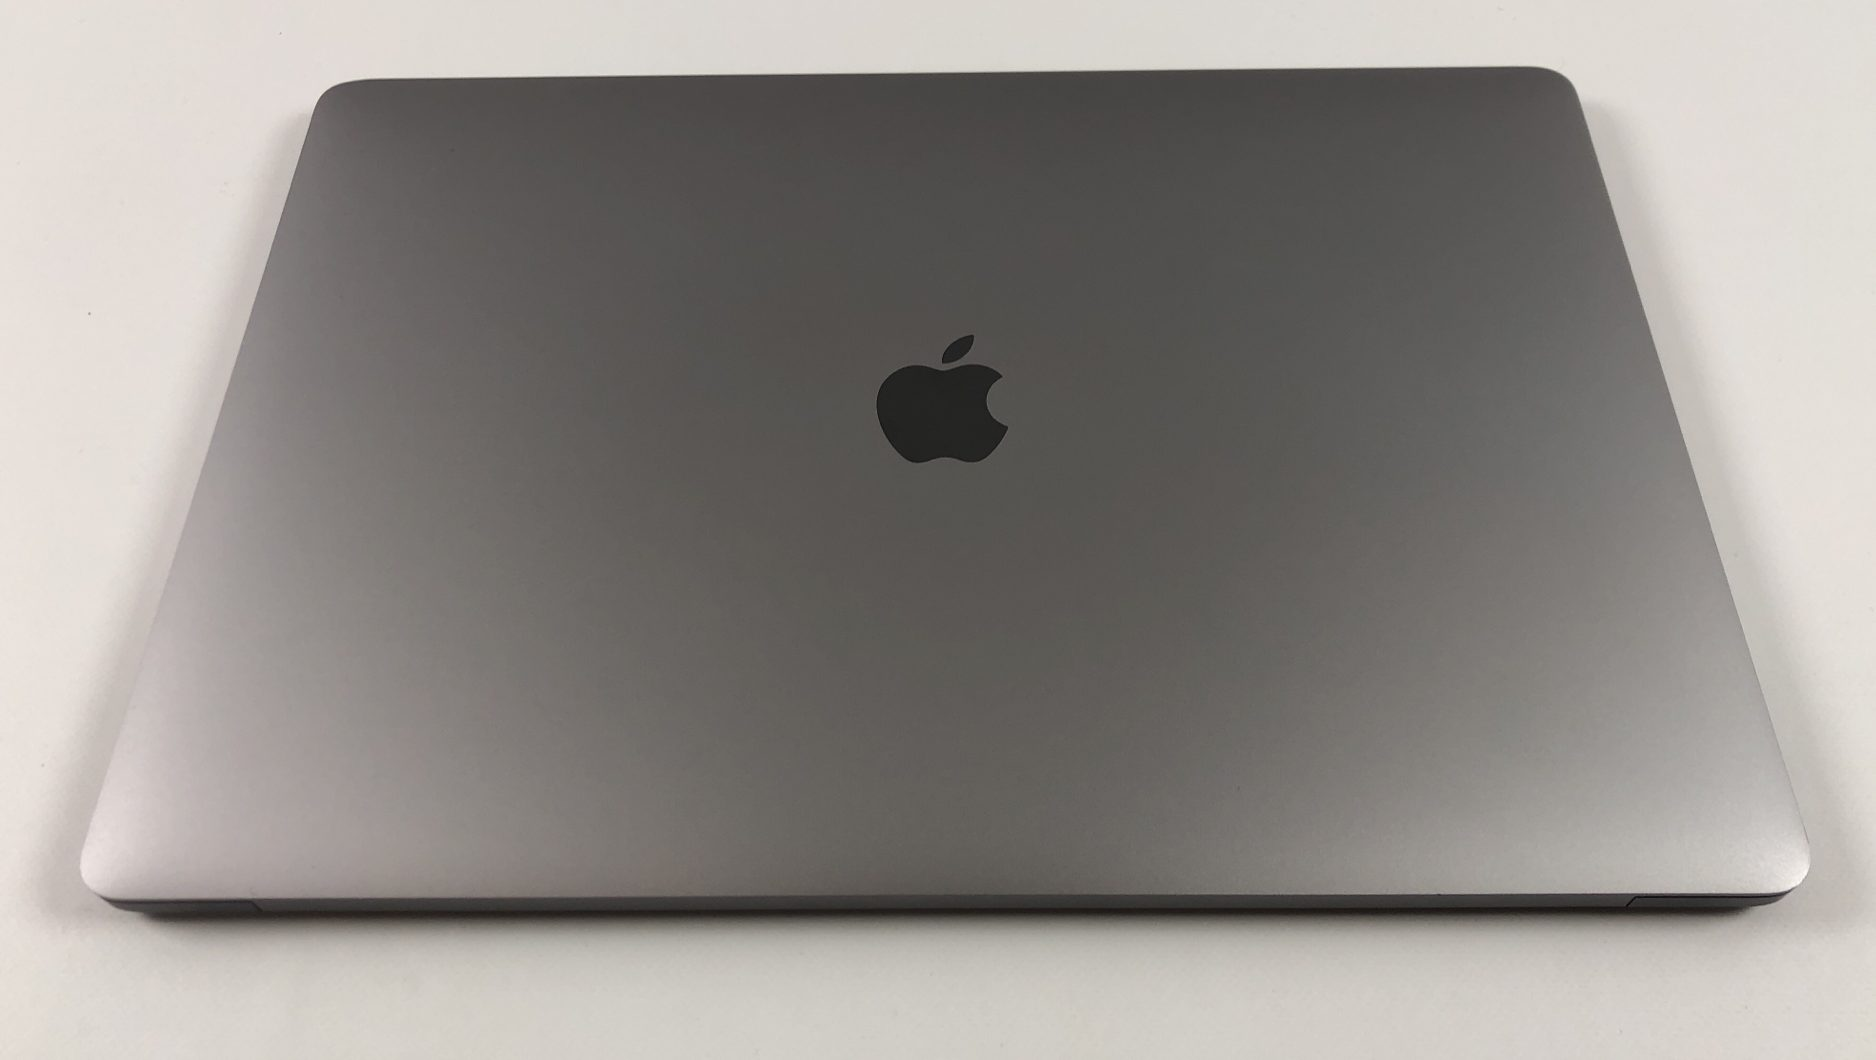 "MacBook Pro 15"" Touch Bar Late 2016 (Intel Quad-Core i7 2.7 GHz 16 GB RAM 512 GB SSD), Space Gray, Intel Quad-Core i7 2.7 GHz, 16 GB RAM, 512 GB SSD, immagine 2"